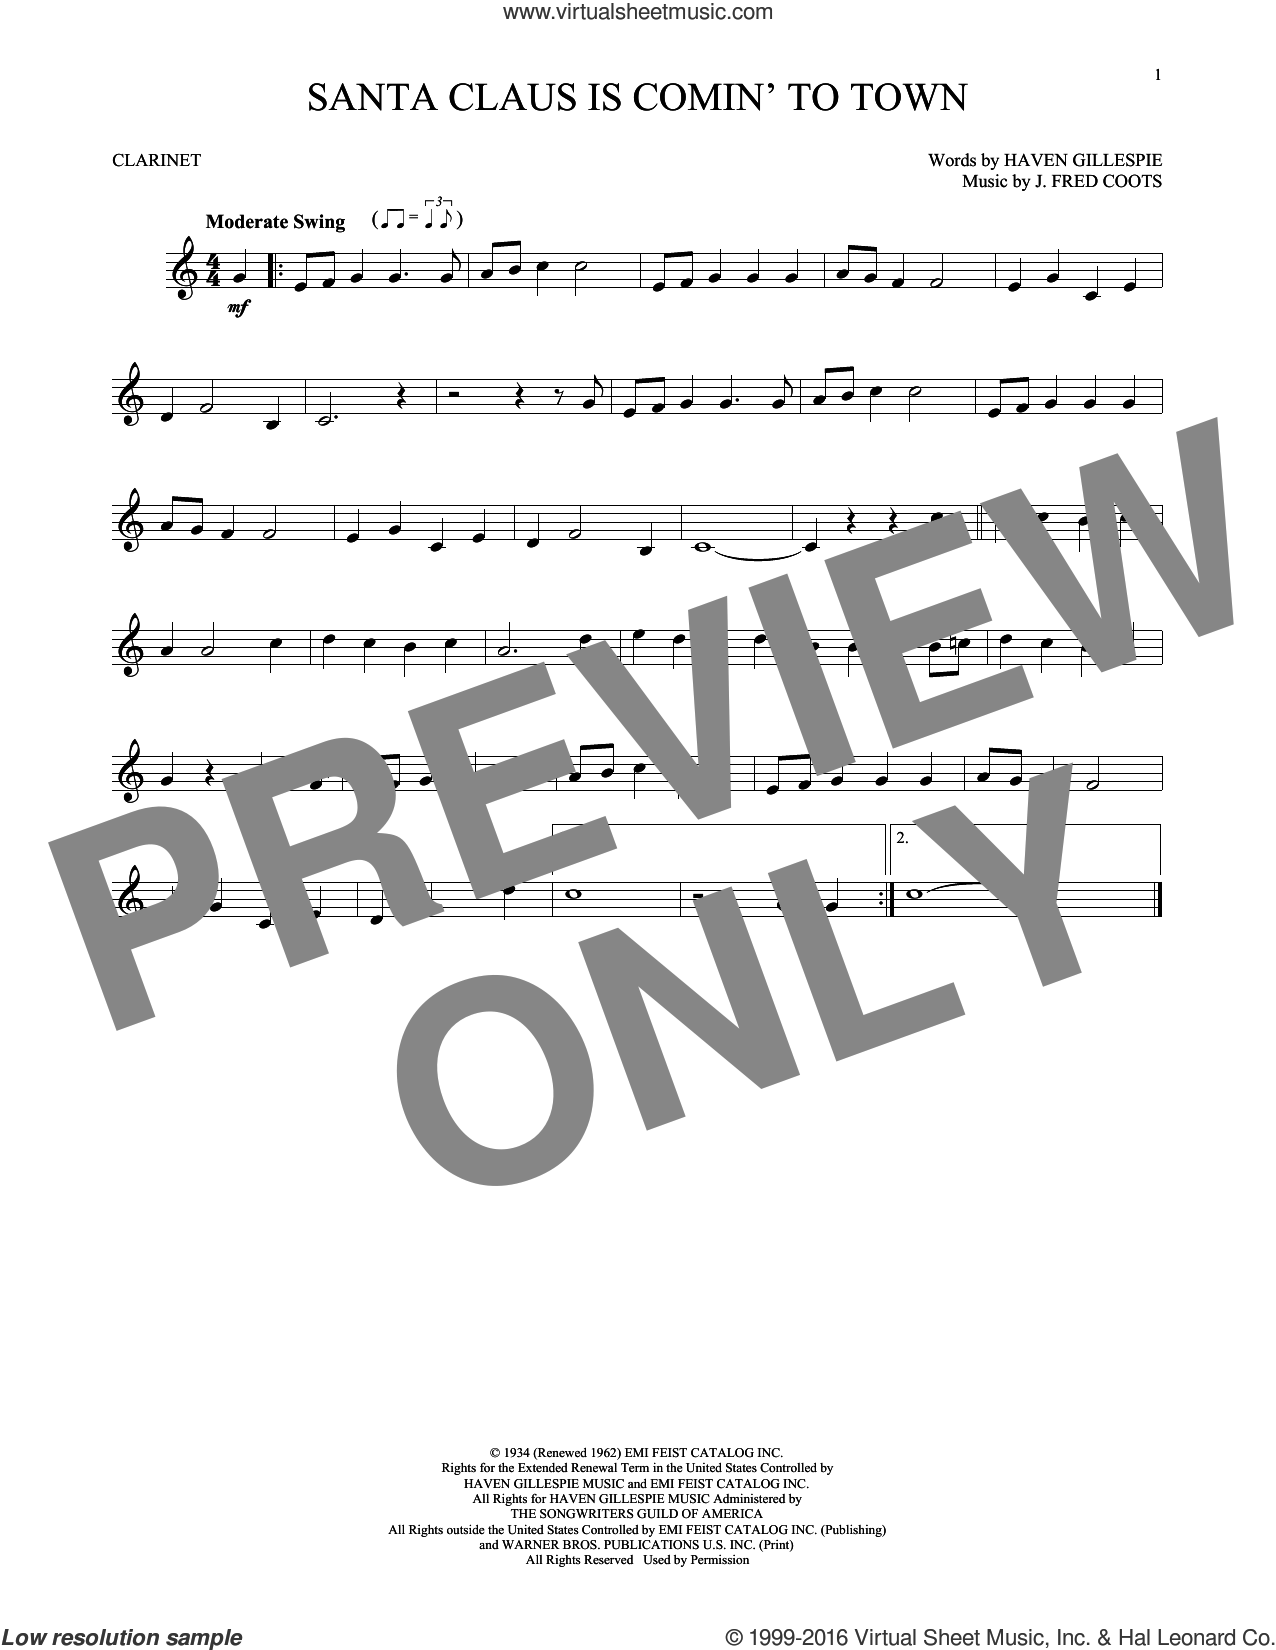 Santa Claus Is Comin' To Town sheet music for clarinet solo by J. Fred Coots and Haven Gillespie, intermediate skill level